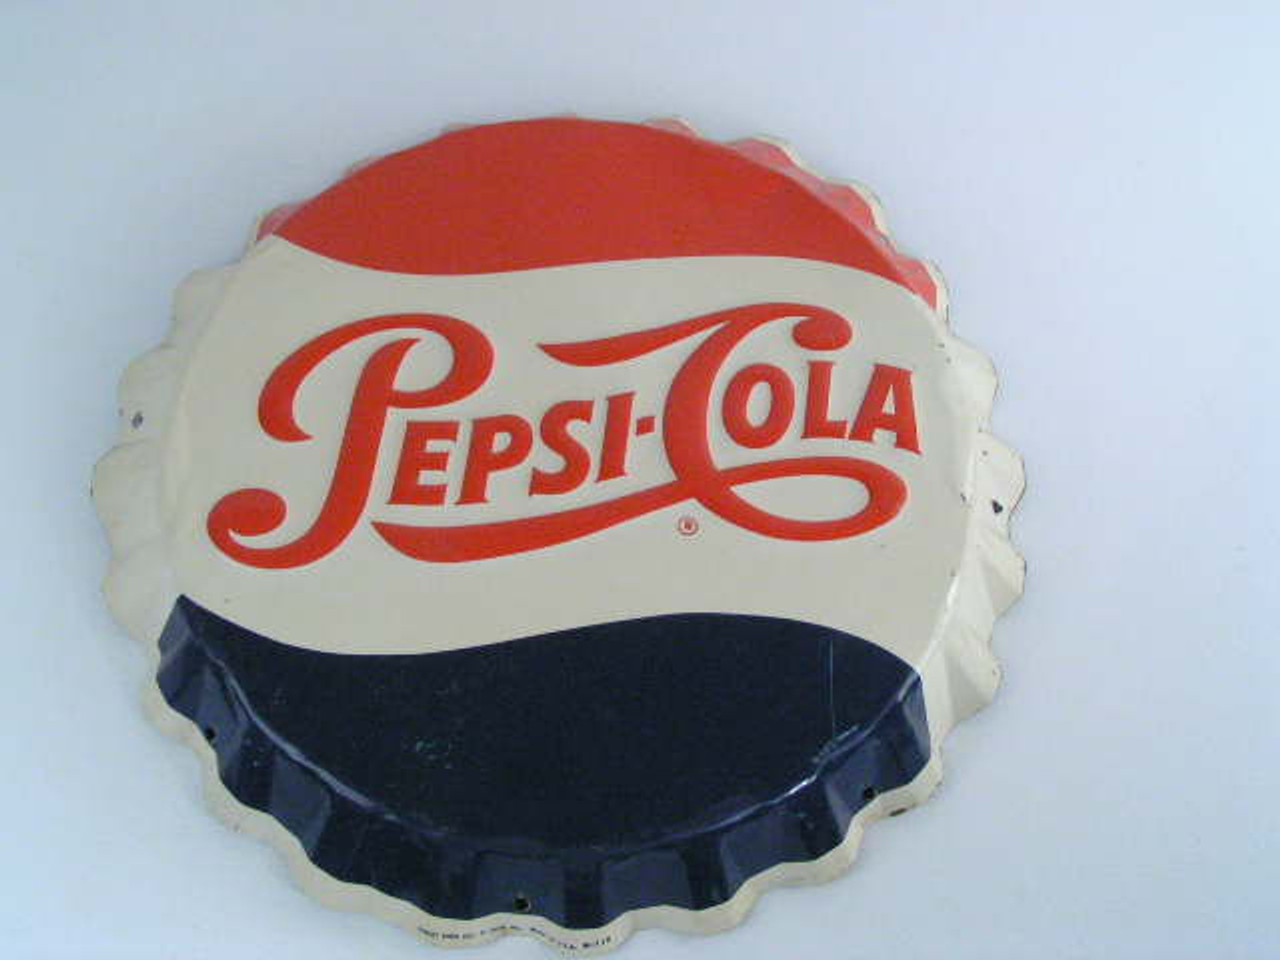 This is a guaranteed original vintage Pepsi-Cola bottle cap sign in  excellent condition made by the Stout Sign Co  of St  Louis that measures  19